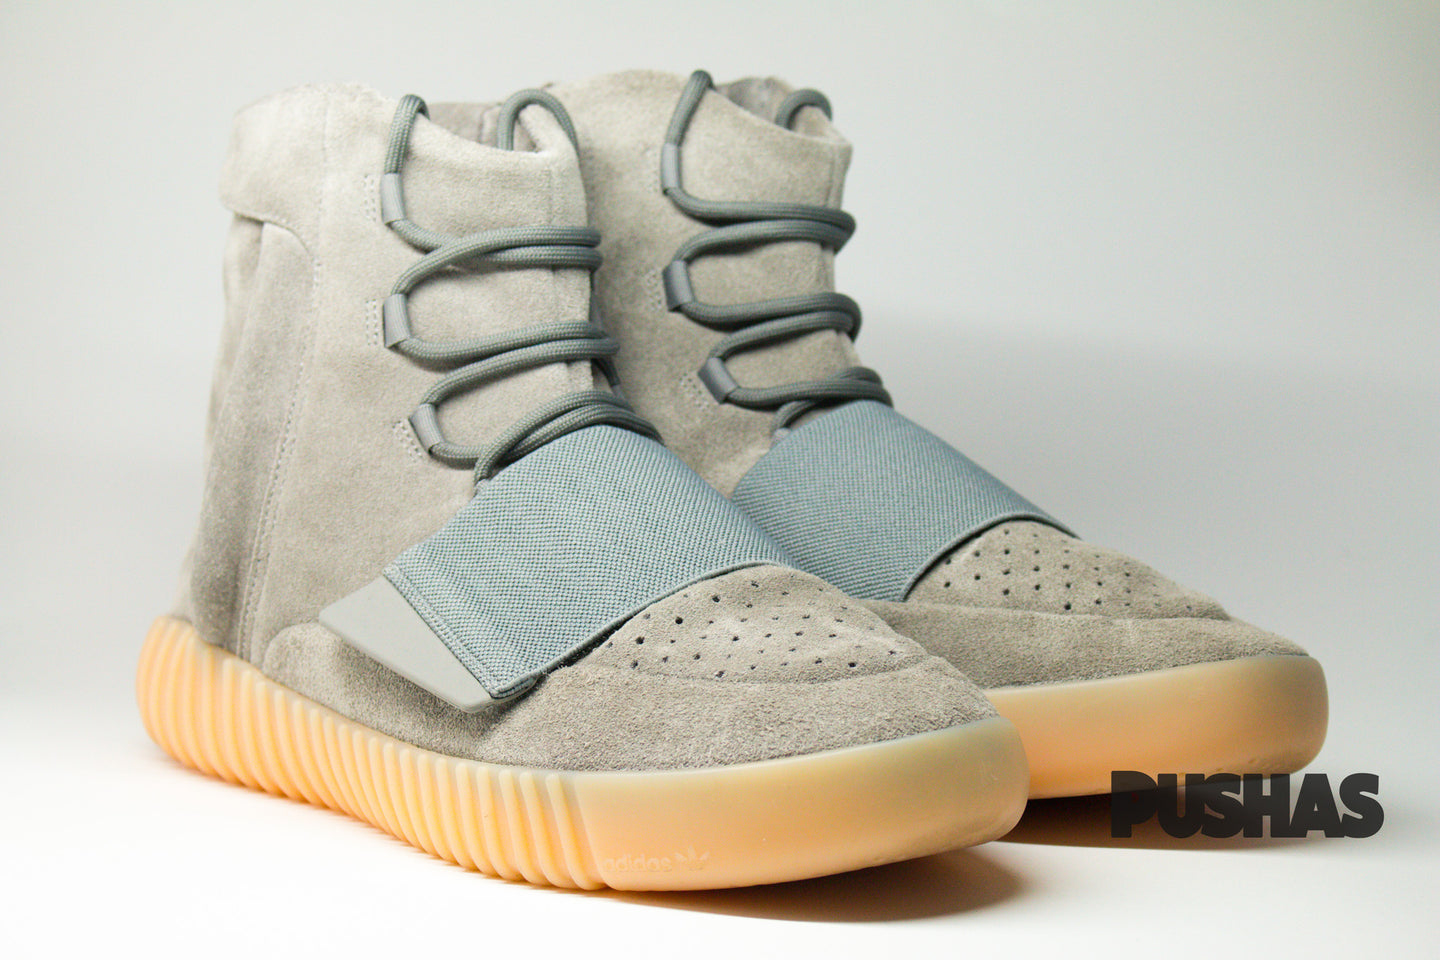 Yeezy 750 Boost 'Glow in the Dark' (Slightly Worn)